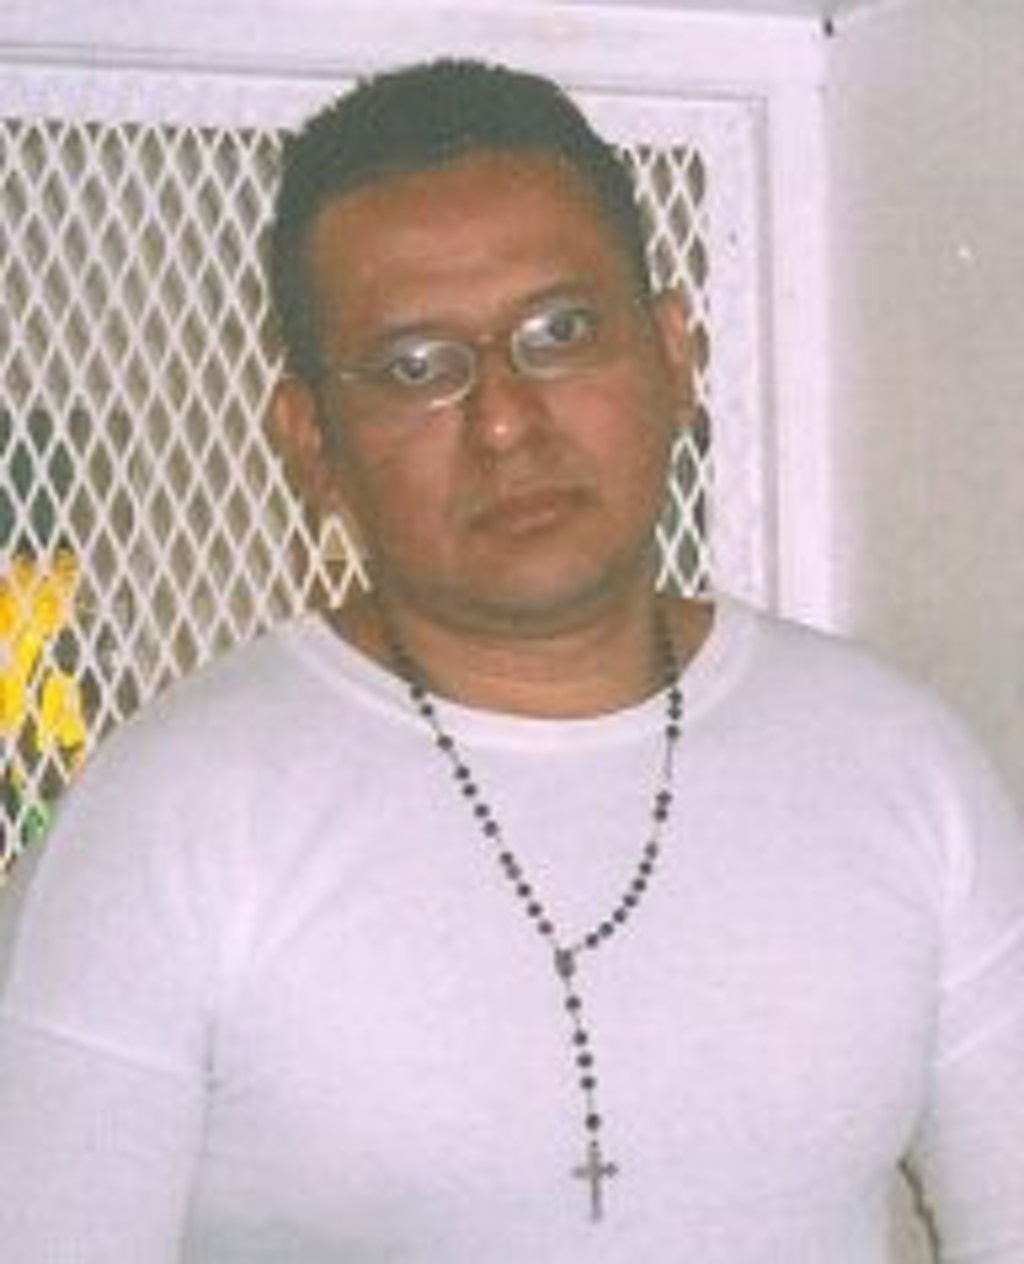 Human Rights Commission Calls for Stay of Execution for Nicaraguan Man on Texas Death Row